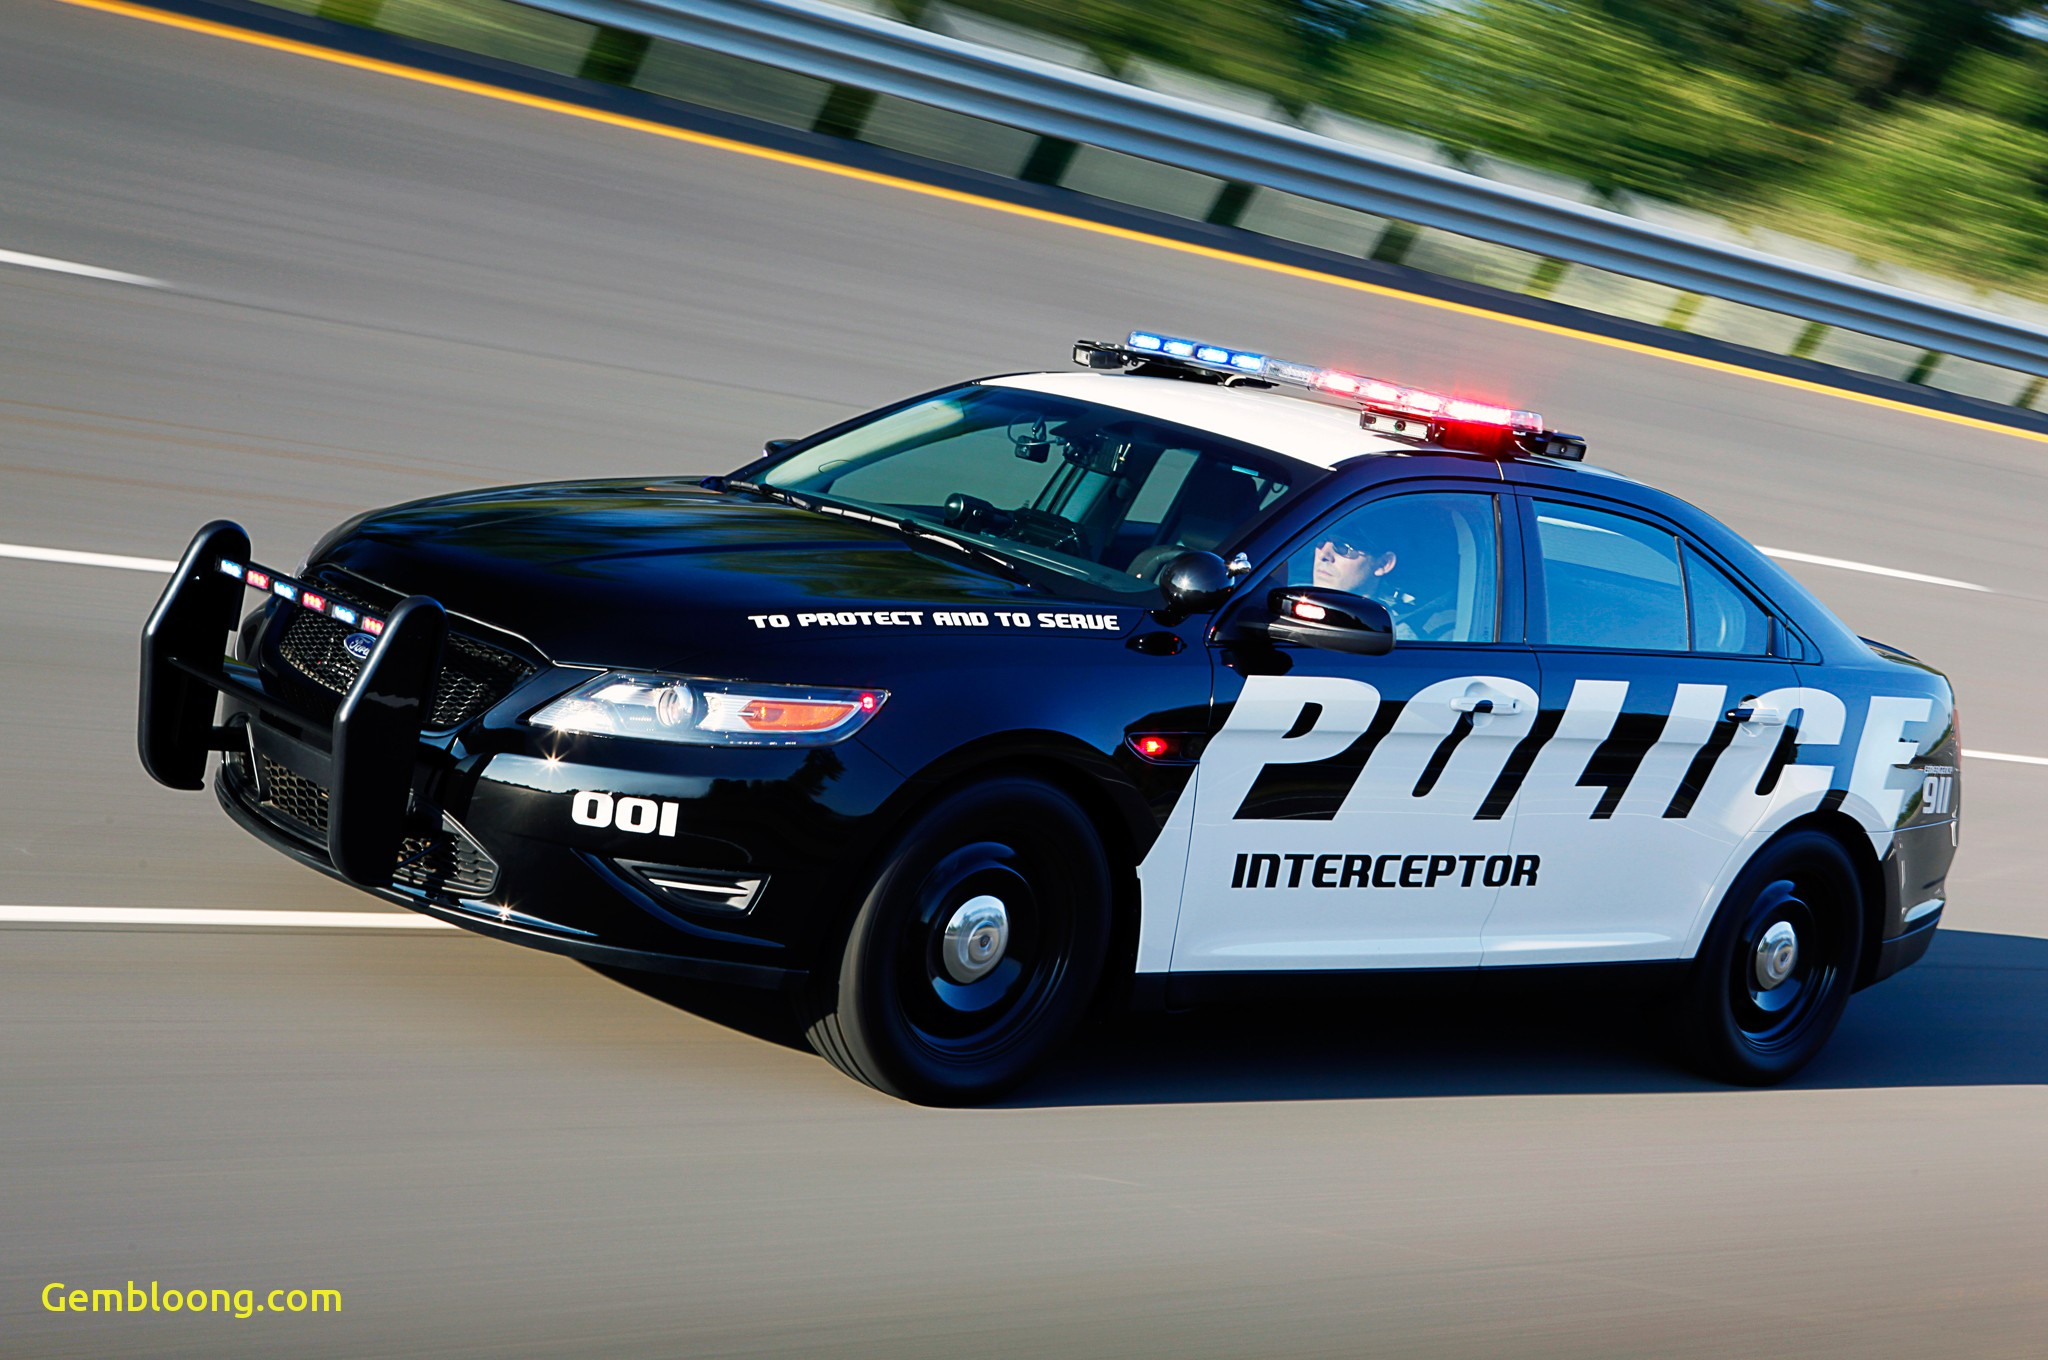 Police Interceptor Cars for Sale Near Me New ford Police Interceptor Fastest Cop Car In Michigan State